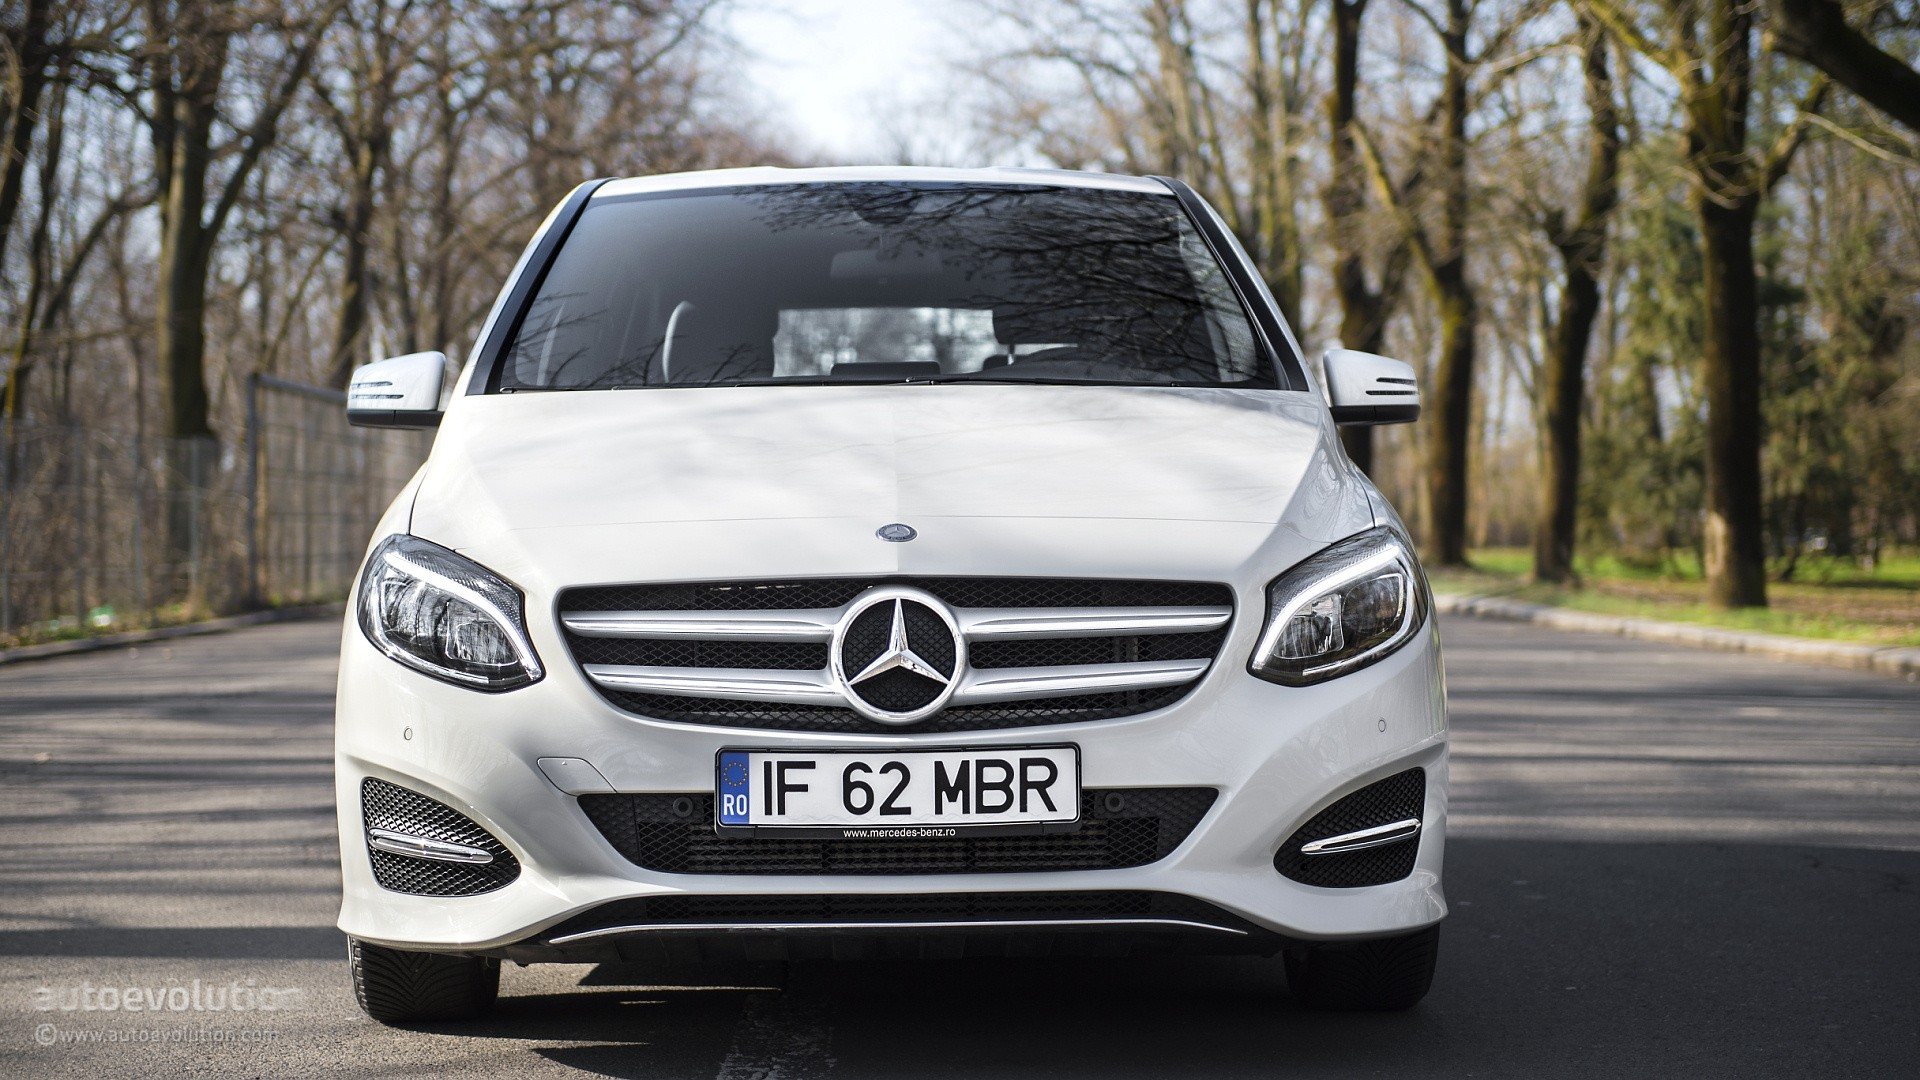 2015 mercedes benz b class review autoevolution for Mercedes benz bclass